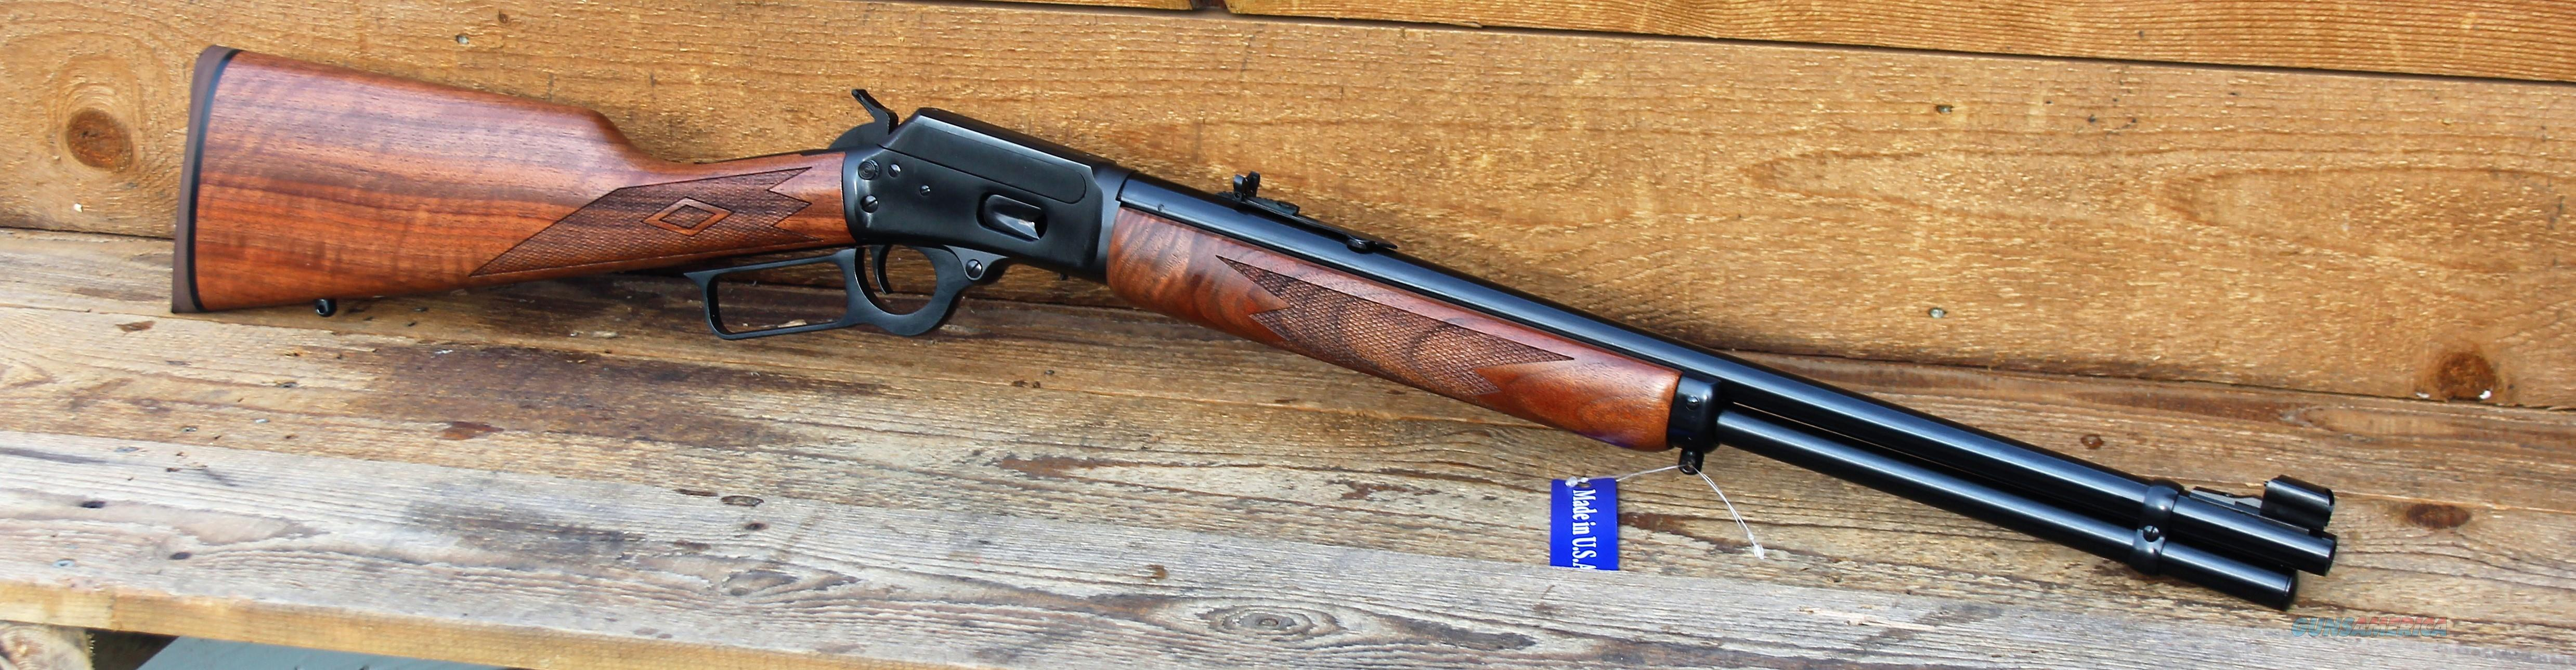 $61  EASY PAY Layaway   Marlin  American Design 1894 .44 Magnum .44 Special Use the same Box of ammo  For Revolver & Pistol and Then Switch to your Carbine For Higher Velocity Using the same 10 Rds Wood checkering Black Walnut Stock 70400  Guns > Rifles > Marlin Rifles > Modern > Lever Action